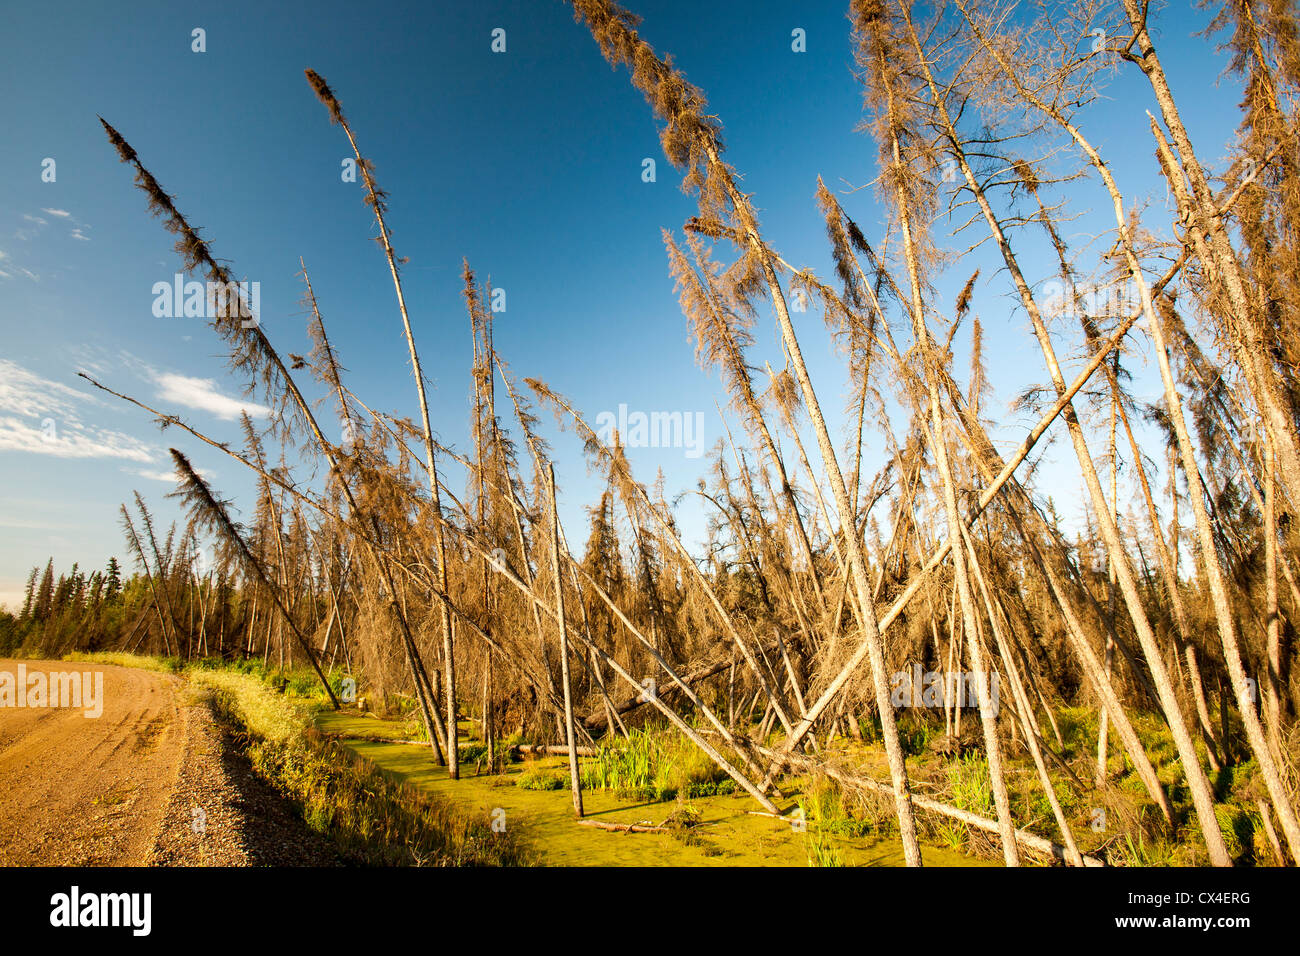 Boreal Forest destroyed by forest fires near Fort McMurray, Alberta, Canada, the centre of the tar sands industry. - Stock Image